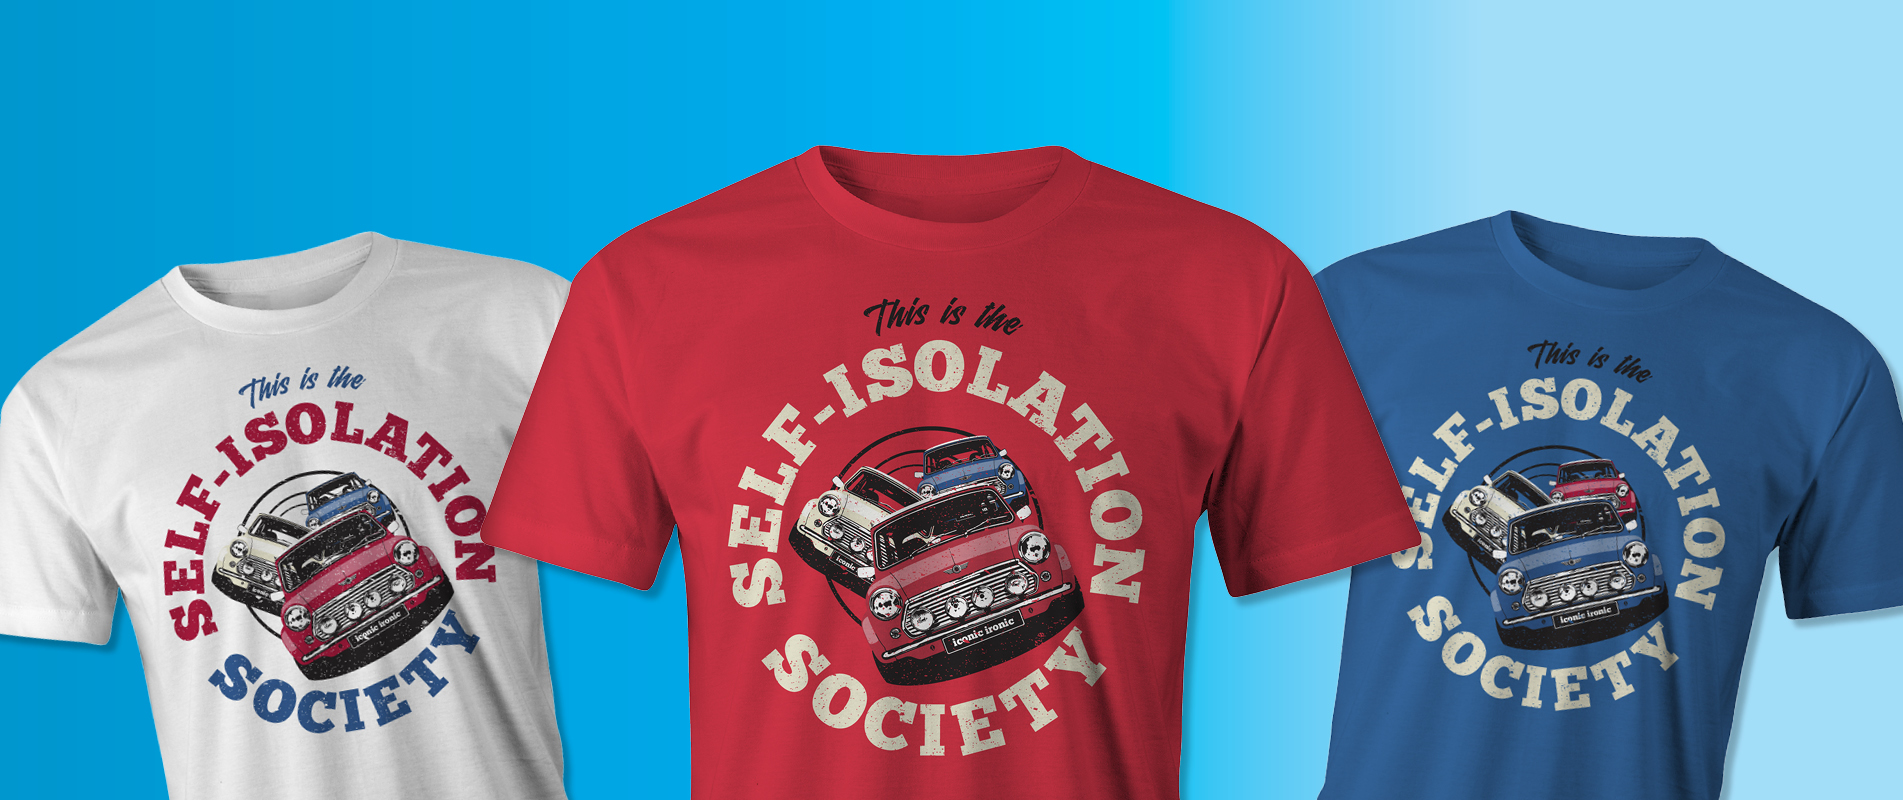 Self Isolation Society Mini Cooper T Shirts in red, white and blue